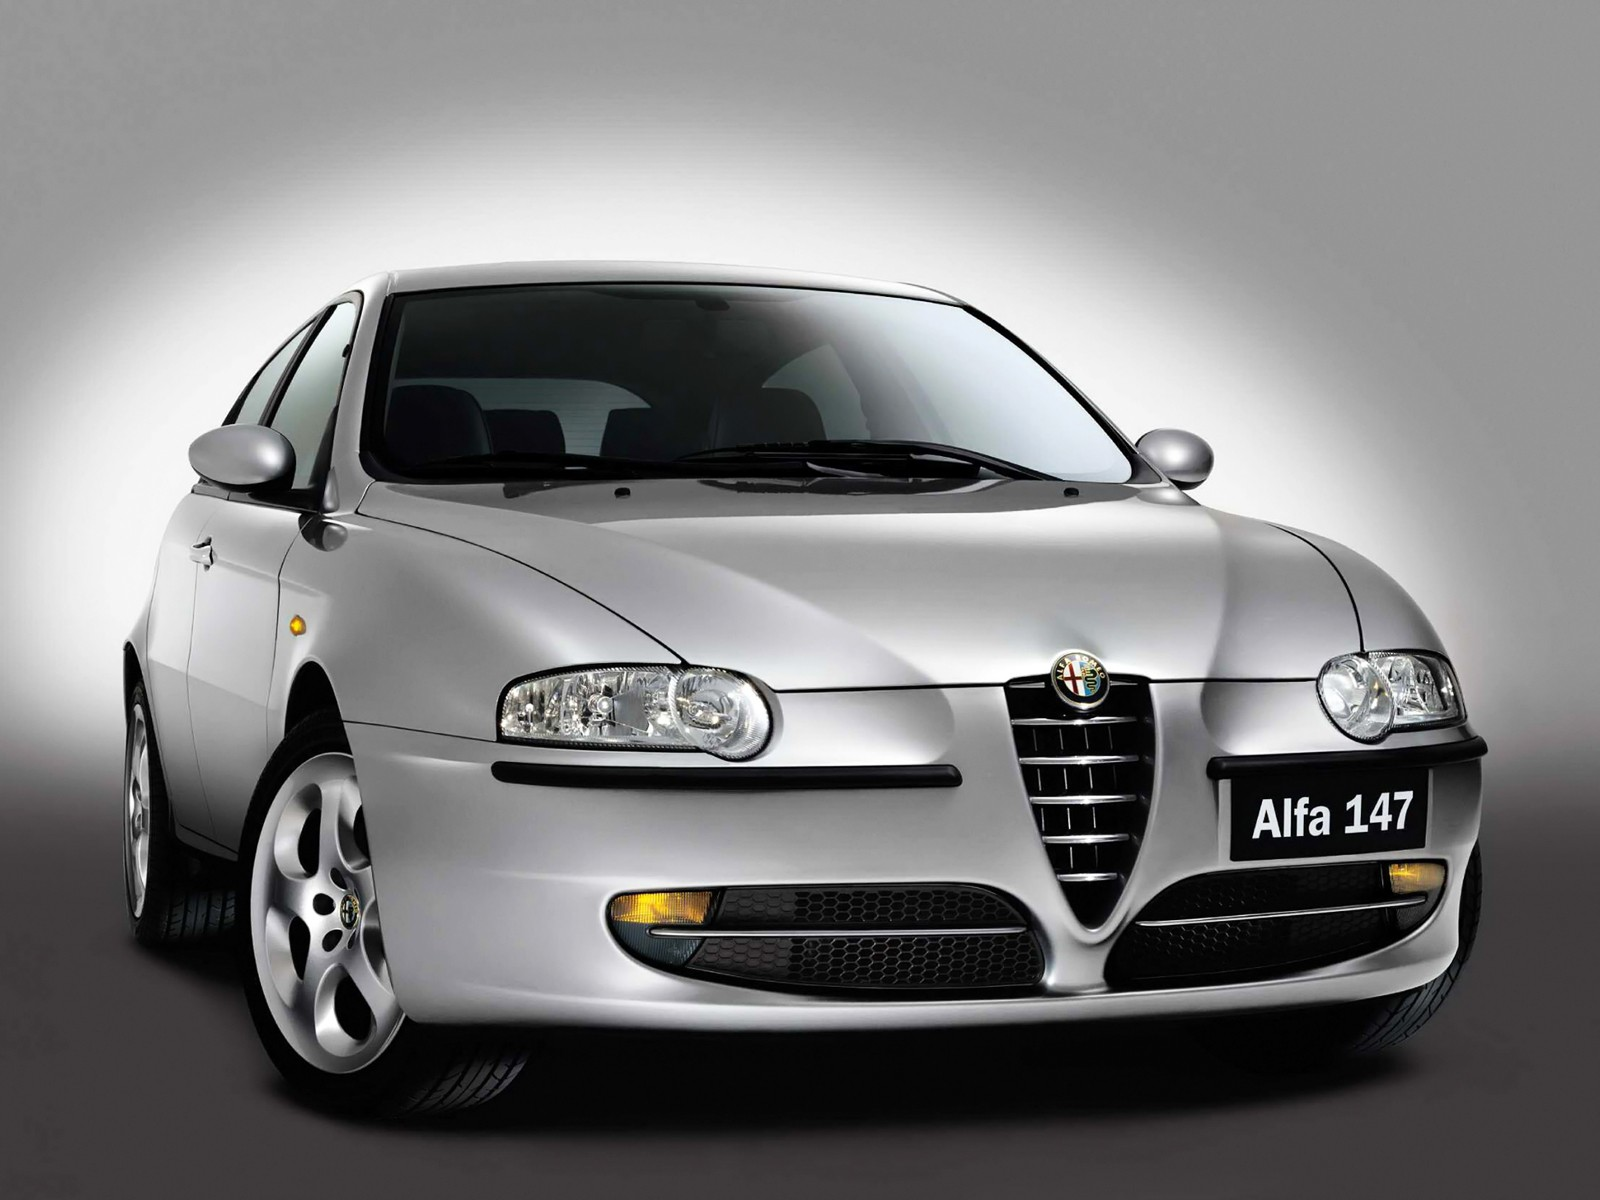 alfa romeo 147 3 doors specs 2005 2006 2007 2008 2009 autoevolution. Black Bedroom Furniture Sets. Home Design Ideas